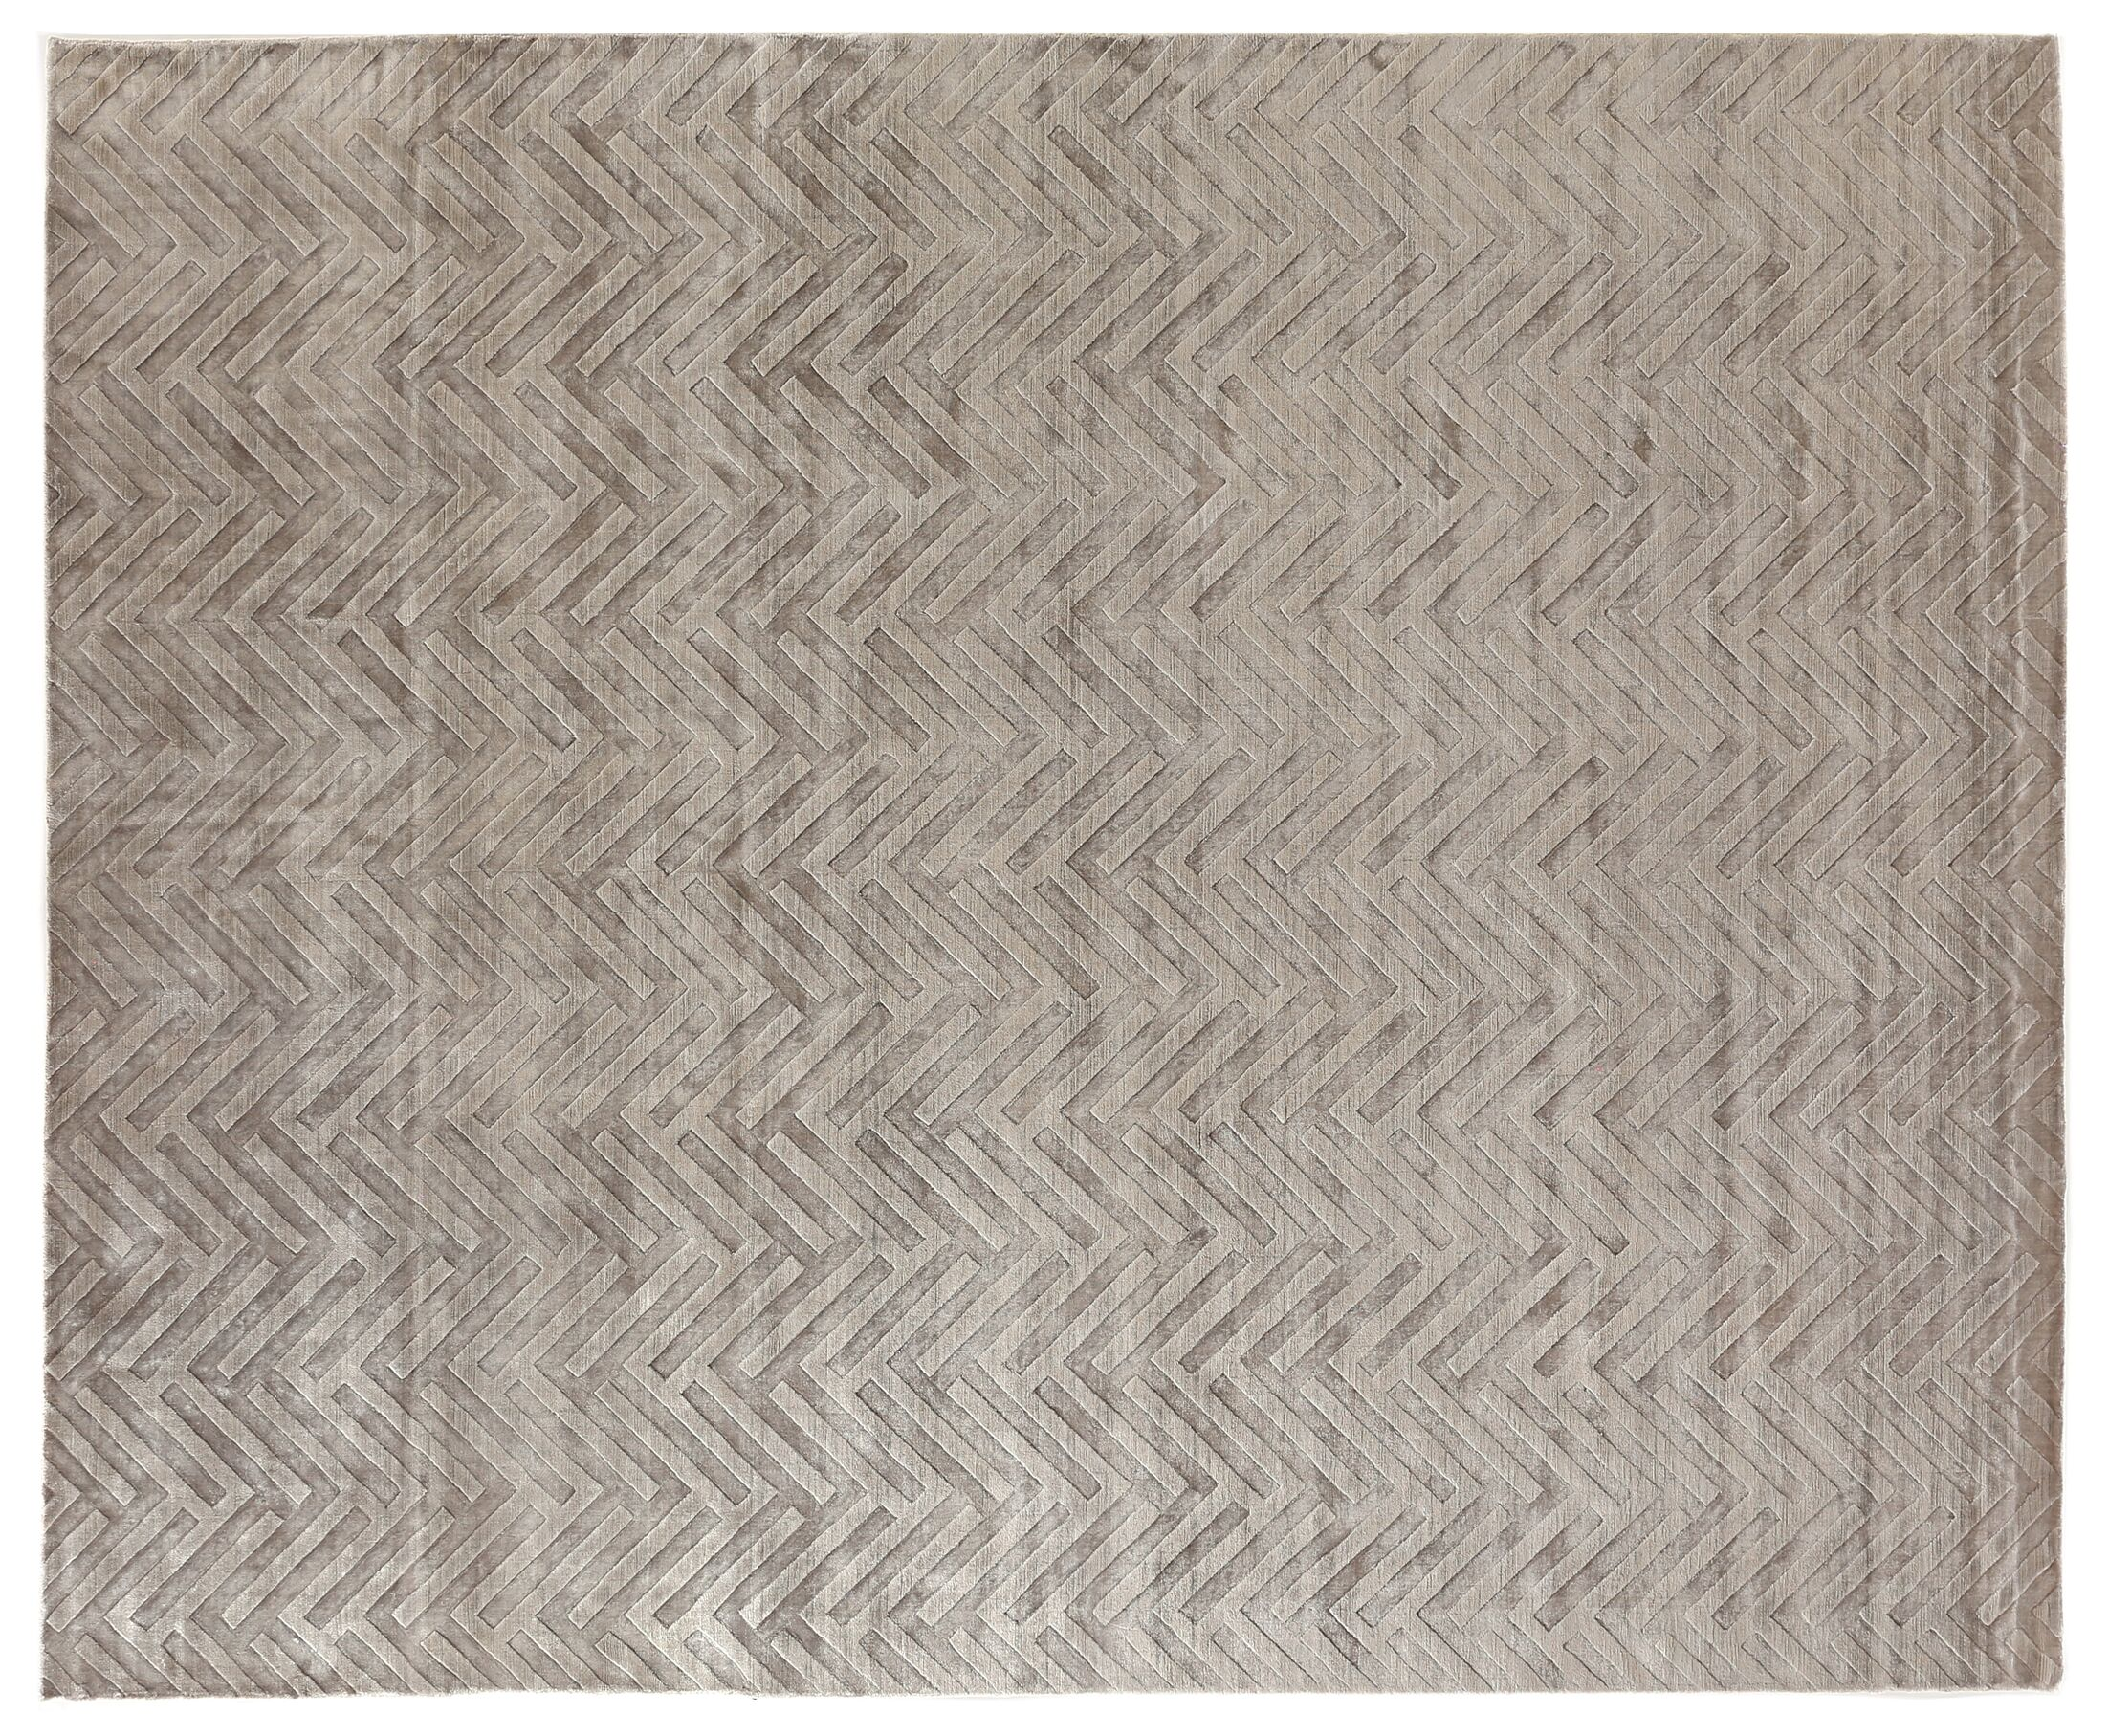 Smooch Carved Hand-Woven Silver Area Rug Rug Size: Rectangle 12' x 15'